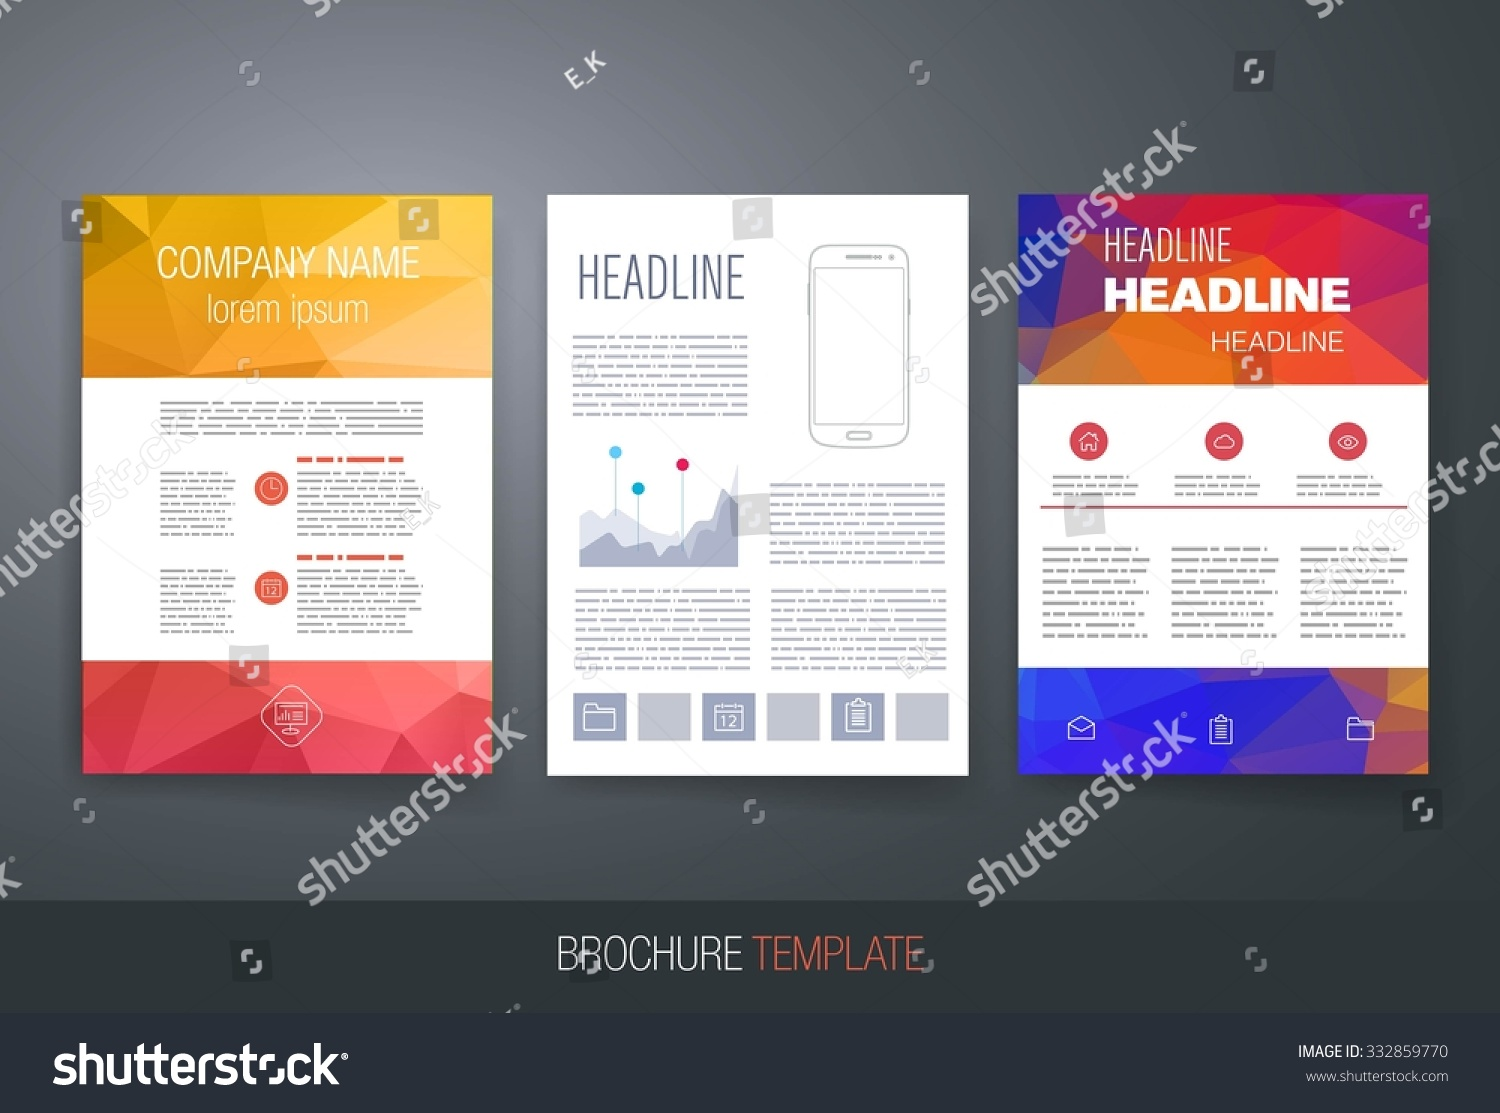 Polygon Business Brochure Flyer Design Layout Template Templates